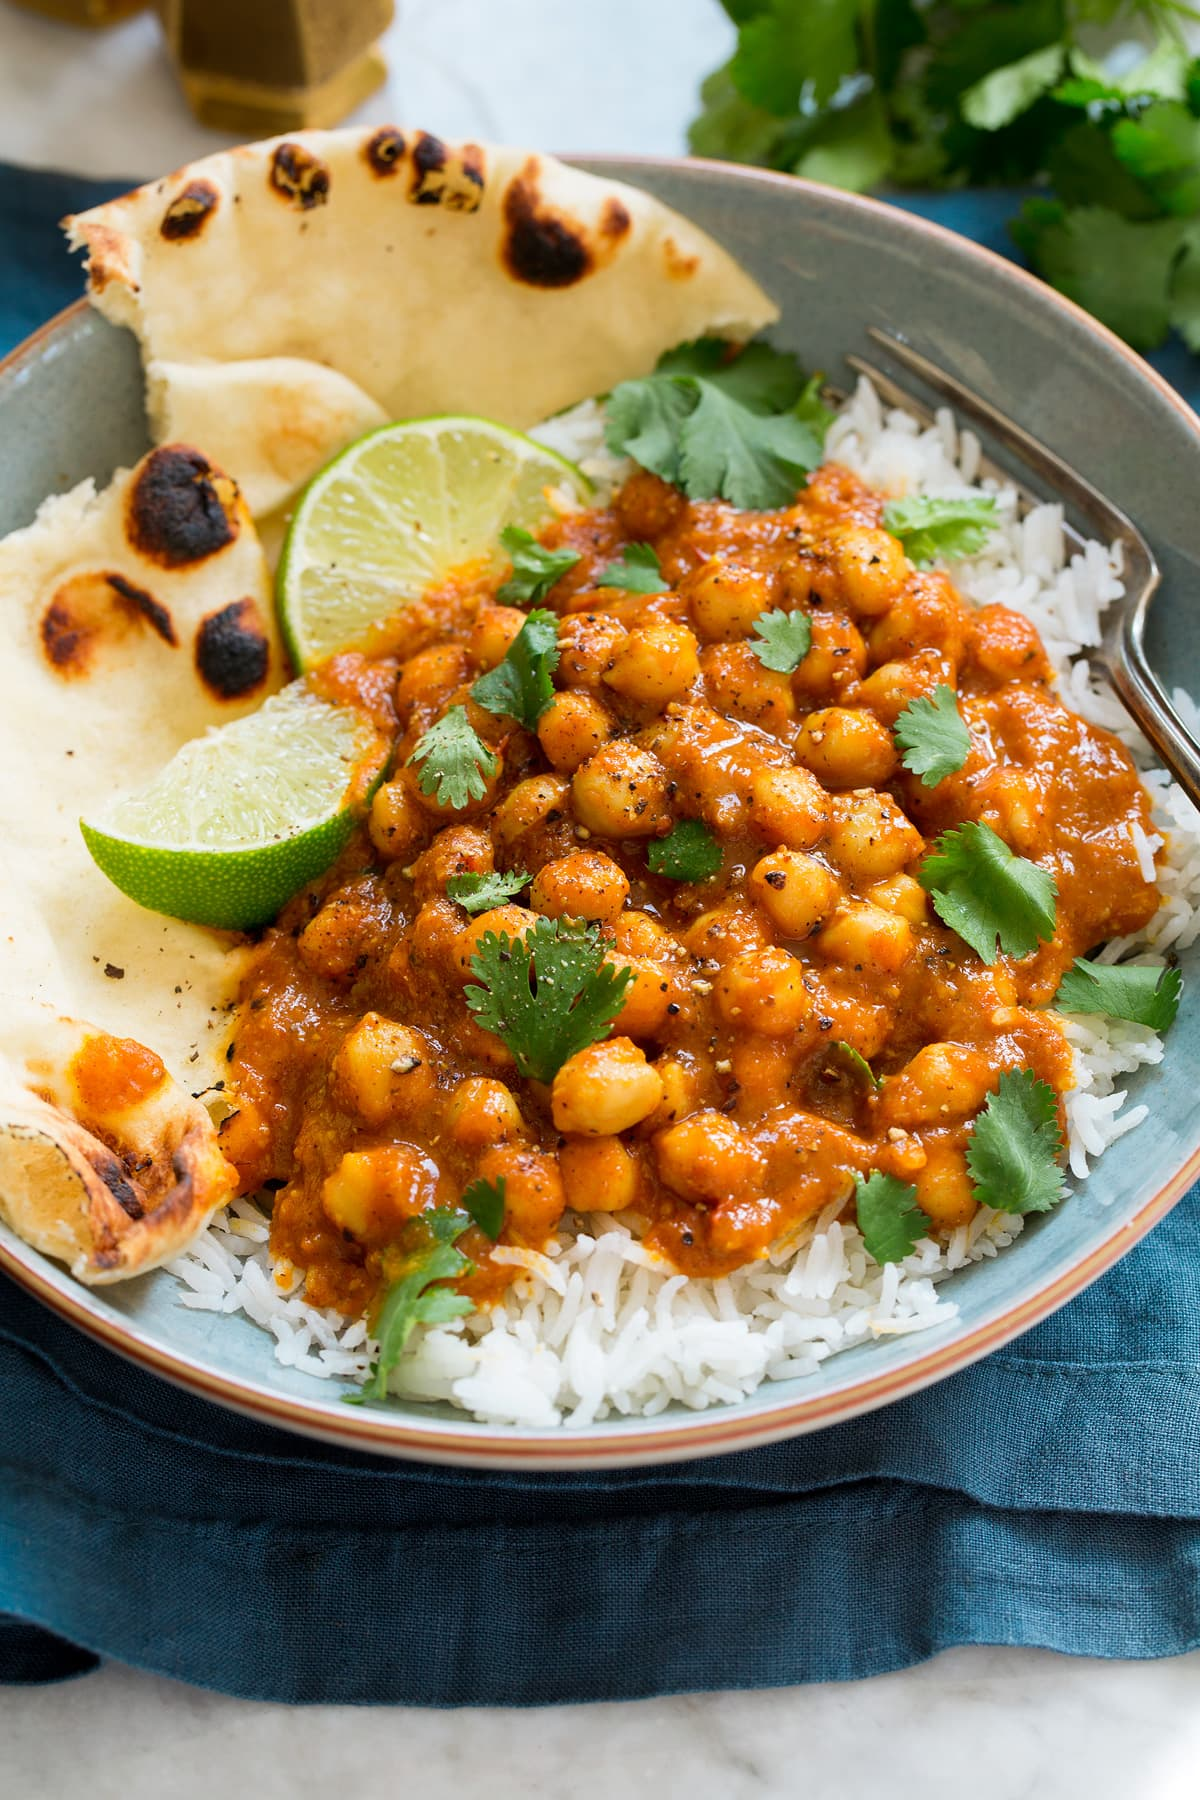 Photo of Chickpea Coconut Curry shown atop rice garnished with cilantro in a serving bowl. Also shows naan bread to the side as a serving suggestion.